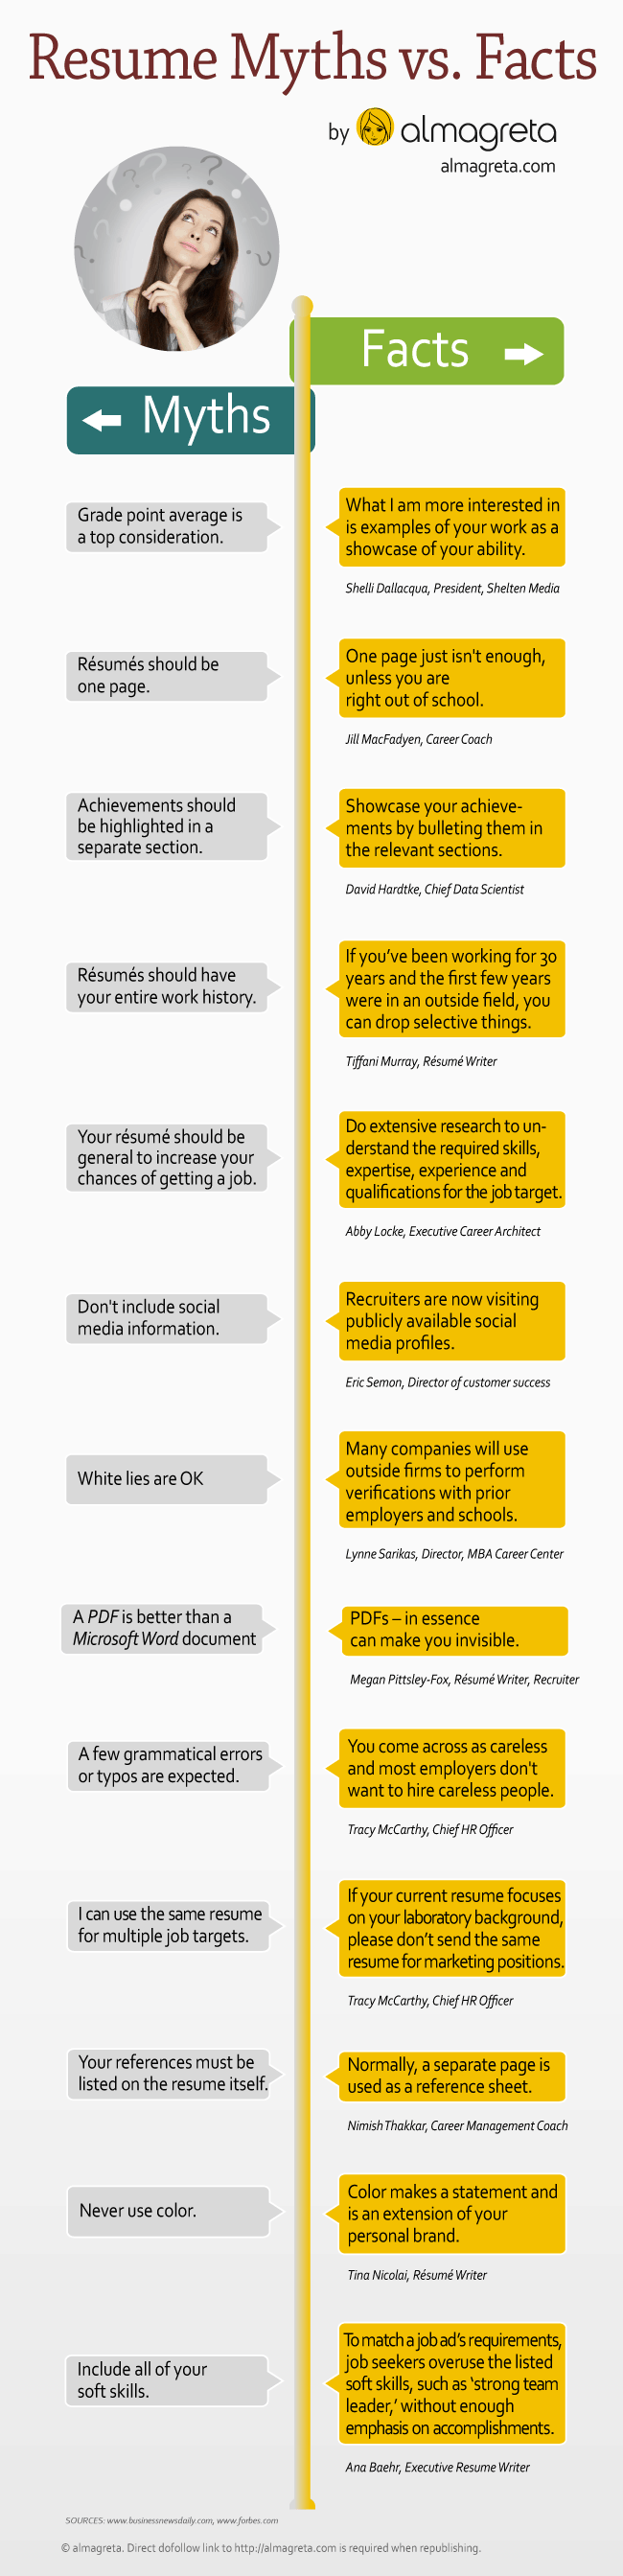 resume-myths-facts-infographic